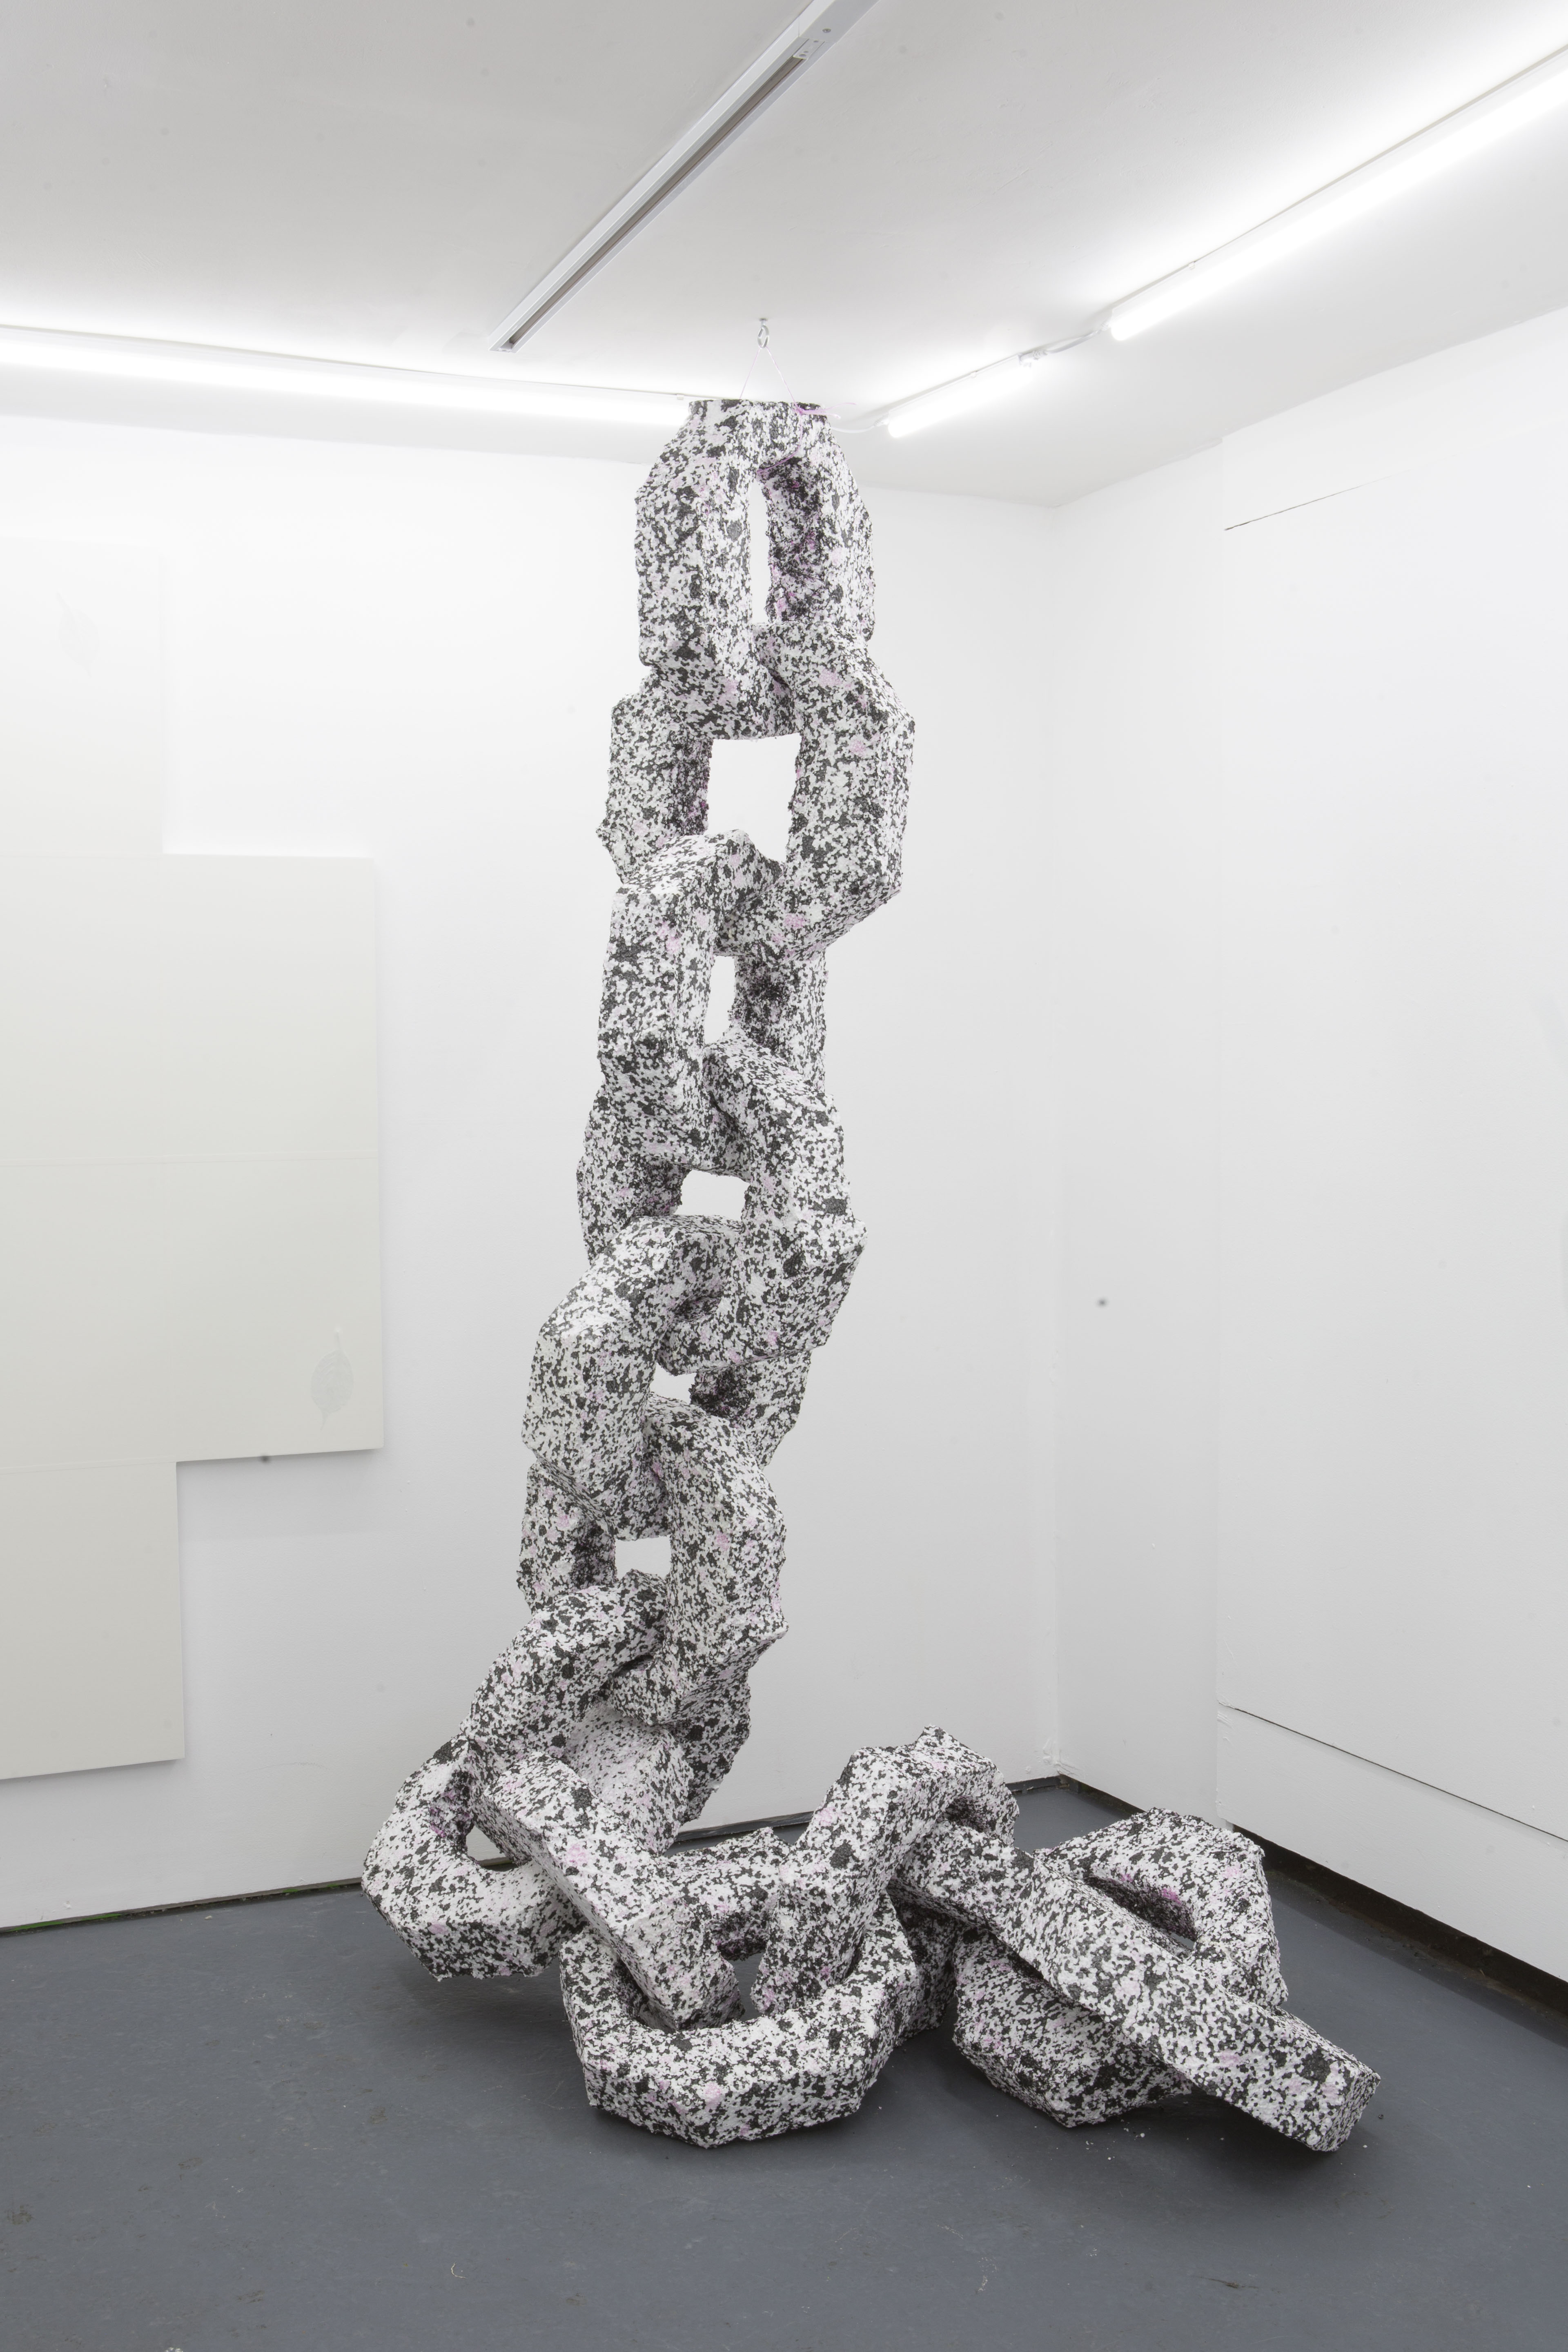 Billy Crosby Chain 03 (2019); Dimensions variable; Polystyene, string.